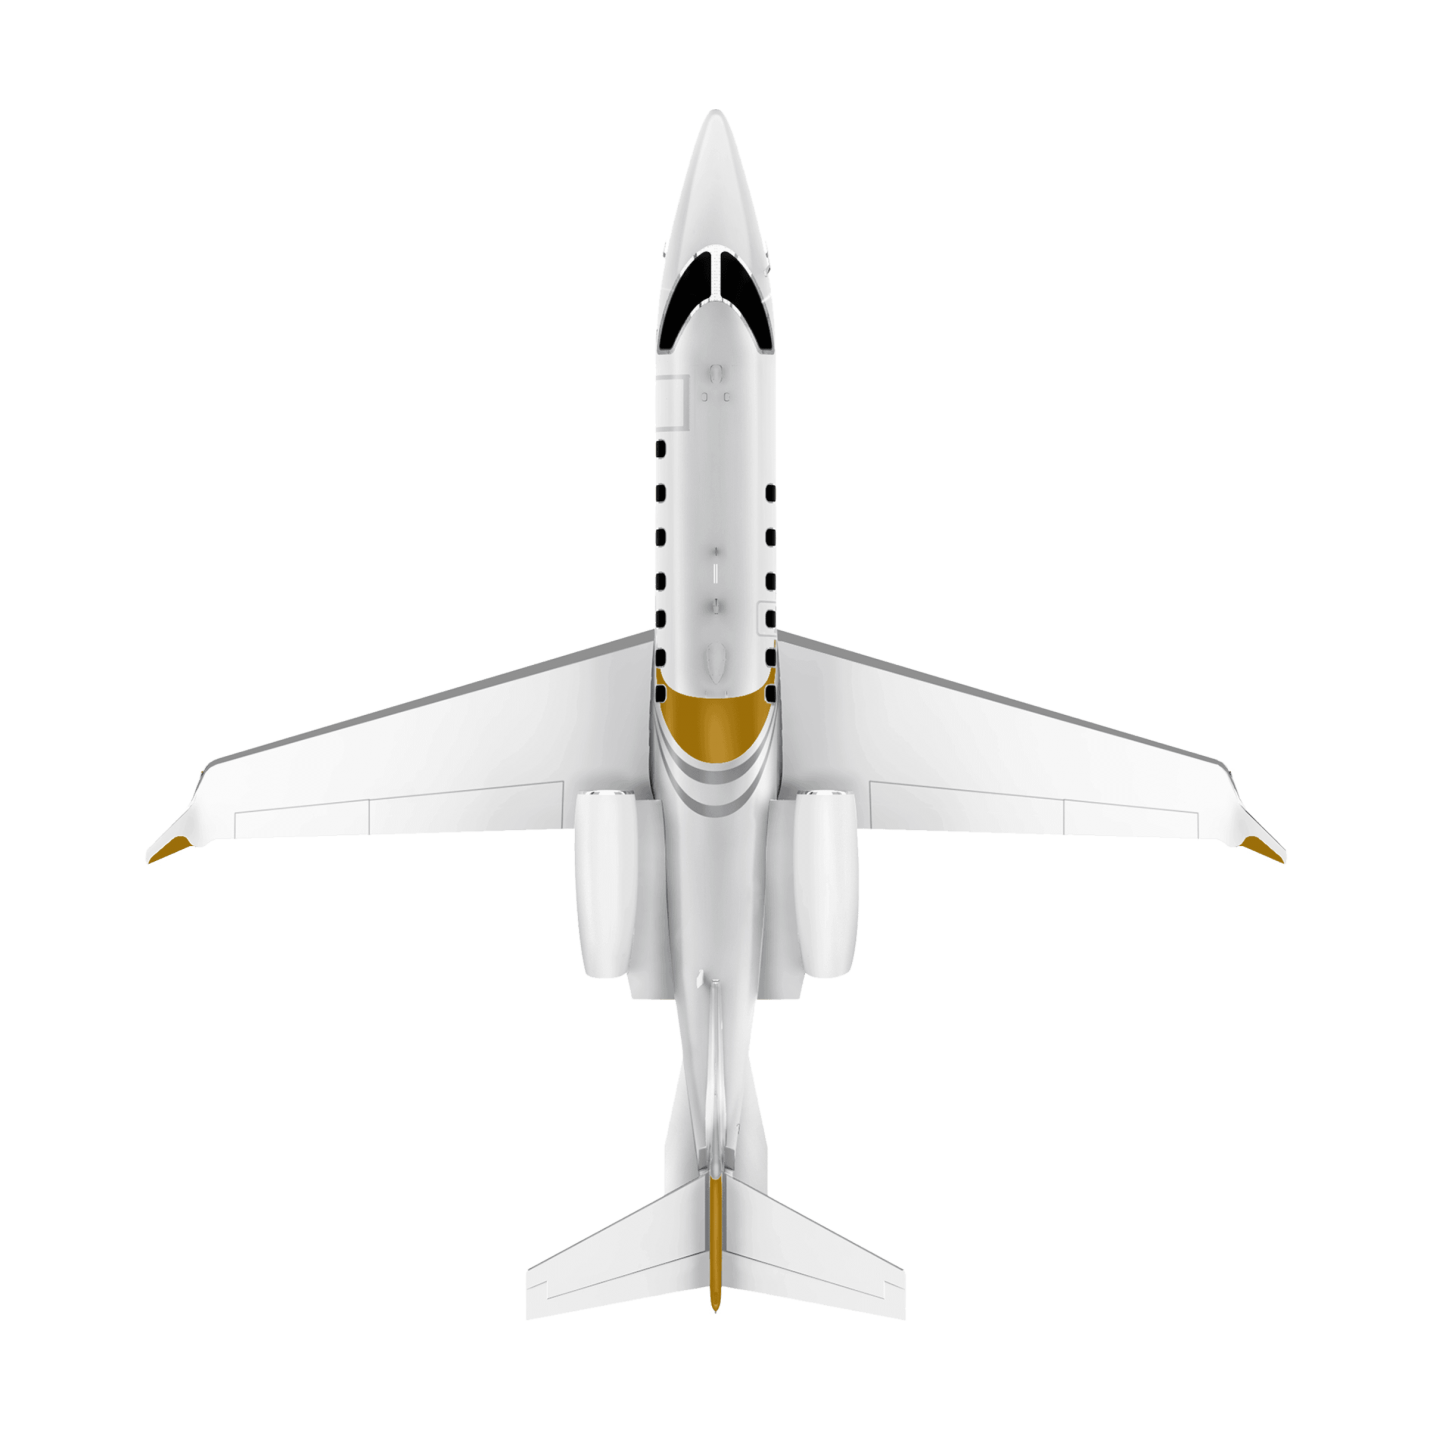 Learjet 70 top view